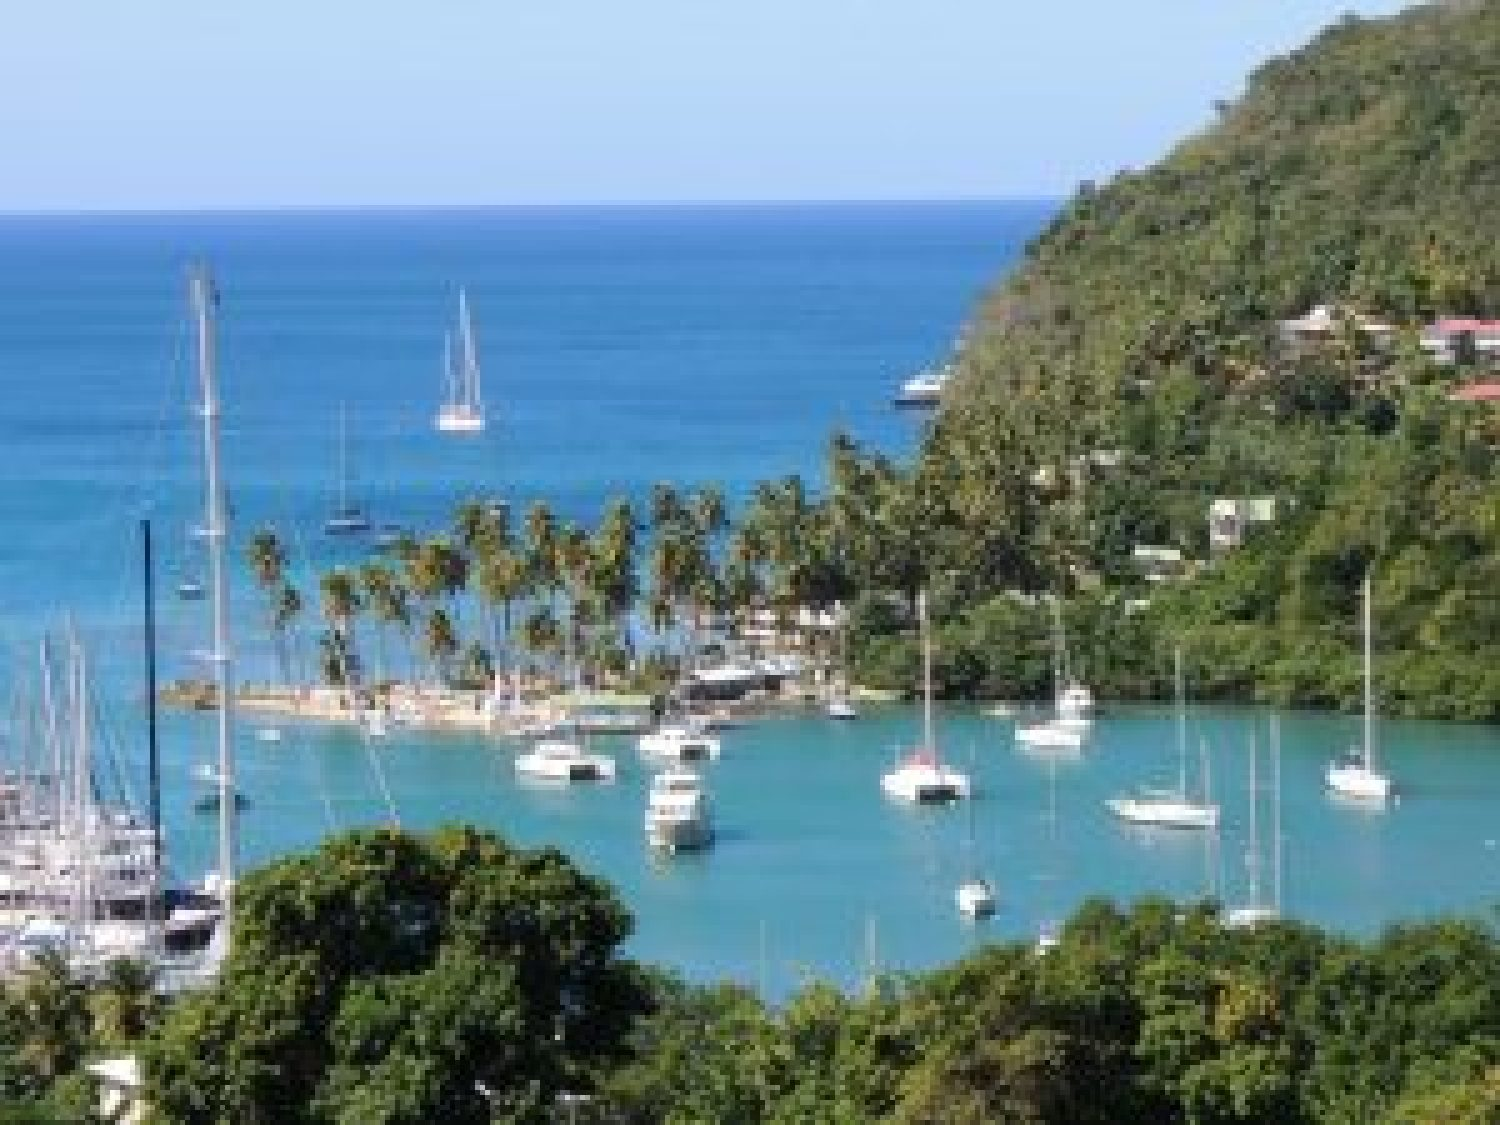 St Lucia- TOP 45 DESTINATIONS TO VISIT IN 2019 FOR INDIANS